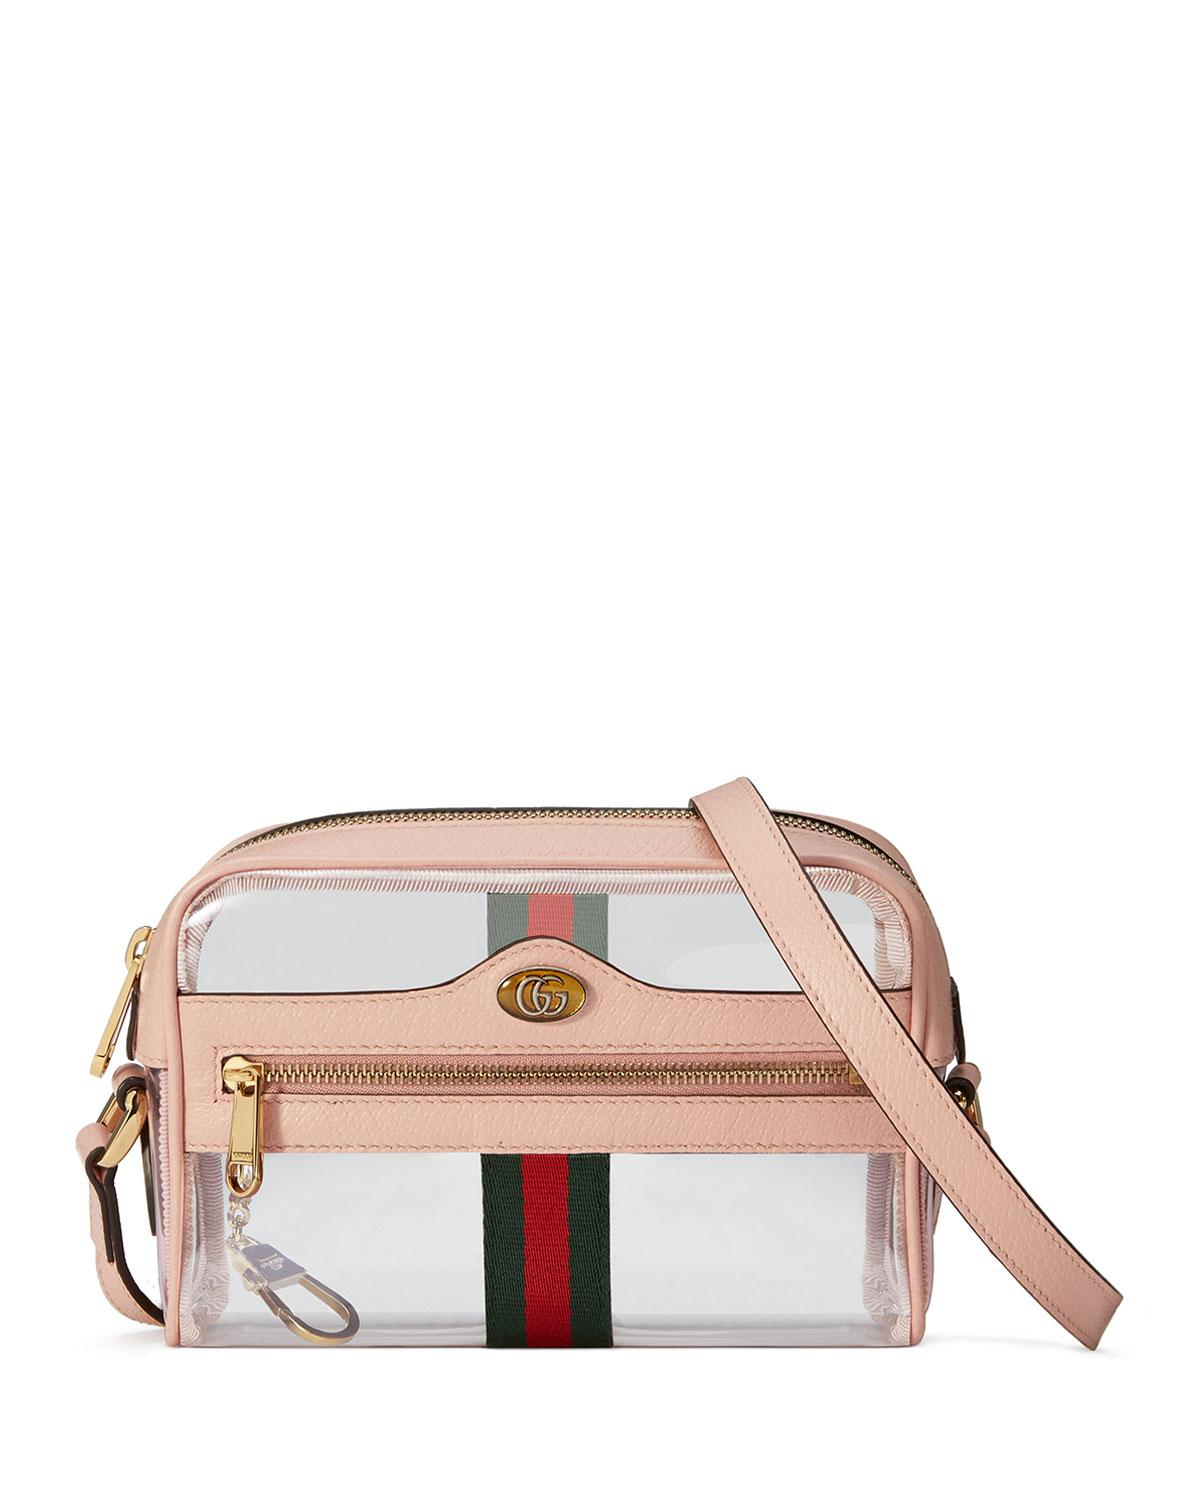 d8b2d7d497fc Gucci Ophidia Mini Transparent Bag in Pink - Lyst